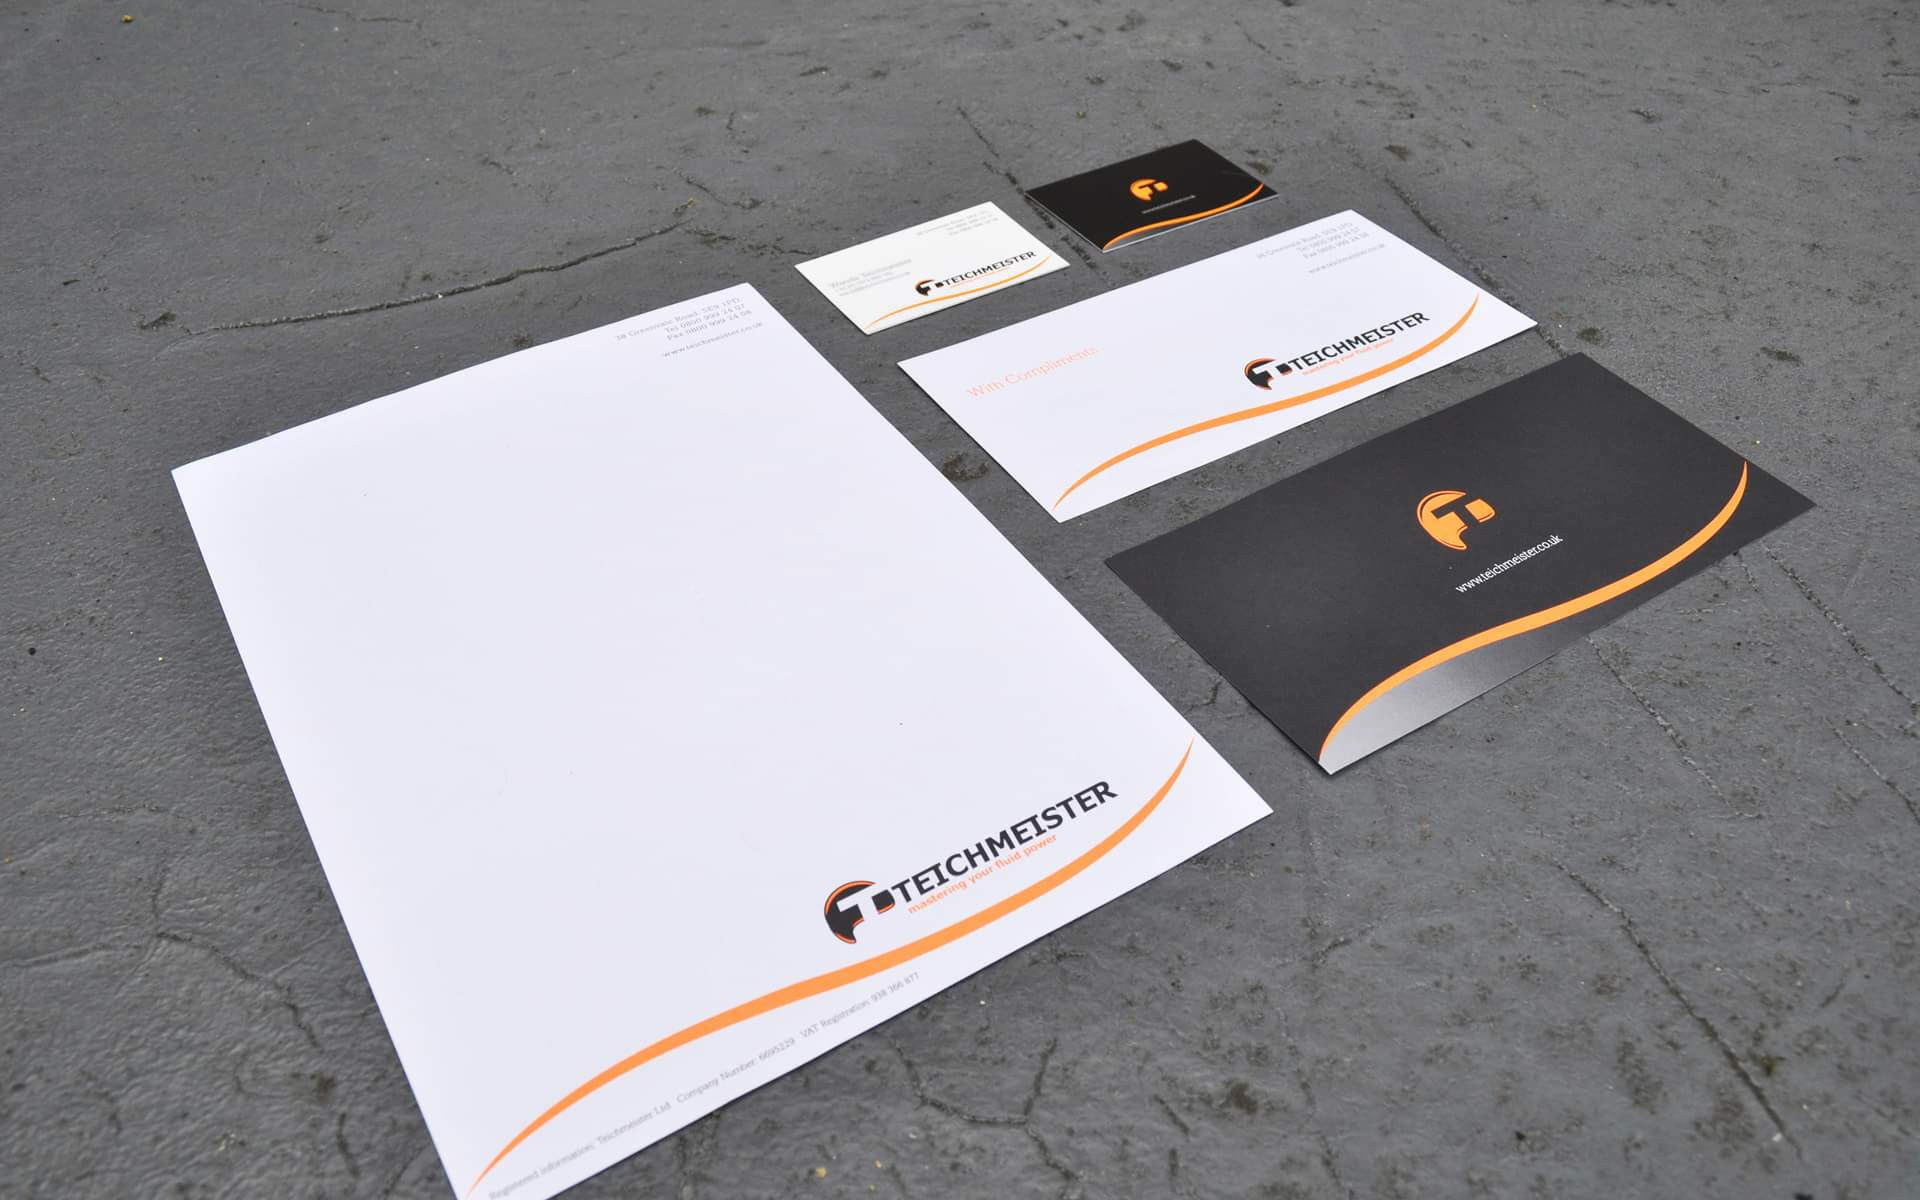 Teichmeister Design Portfolio Teichmeister Branding Stationery And Livery